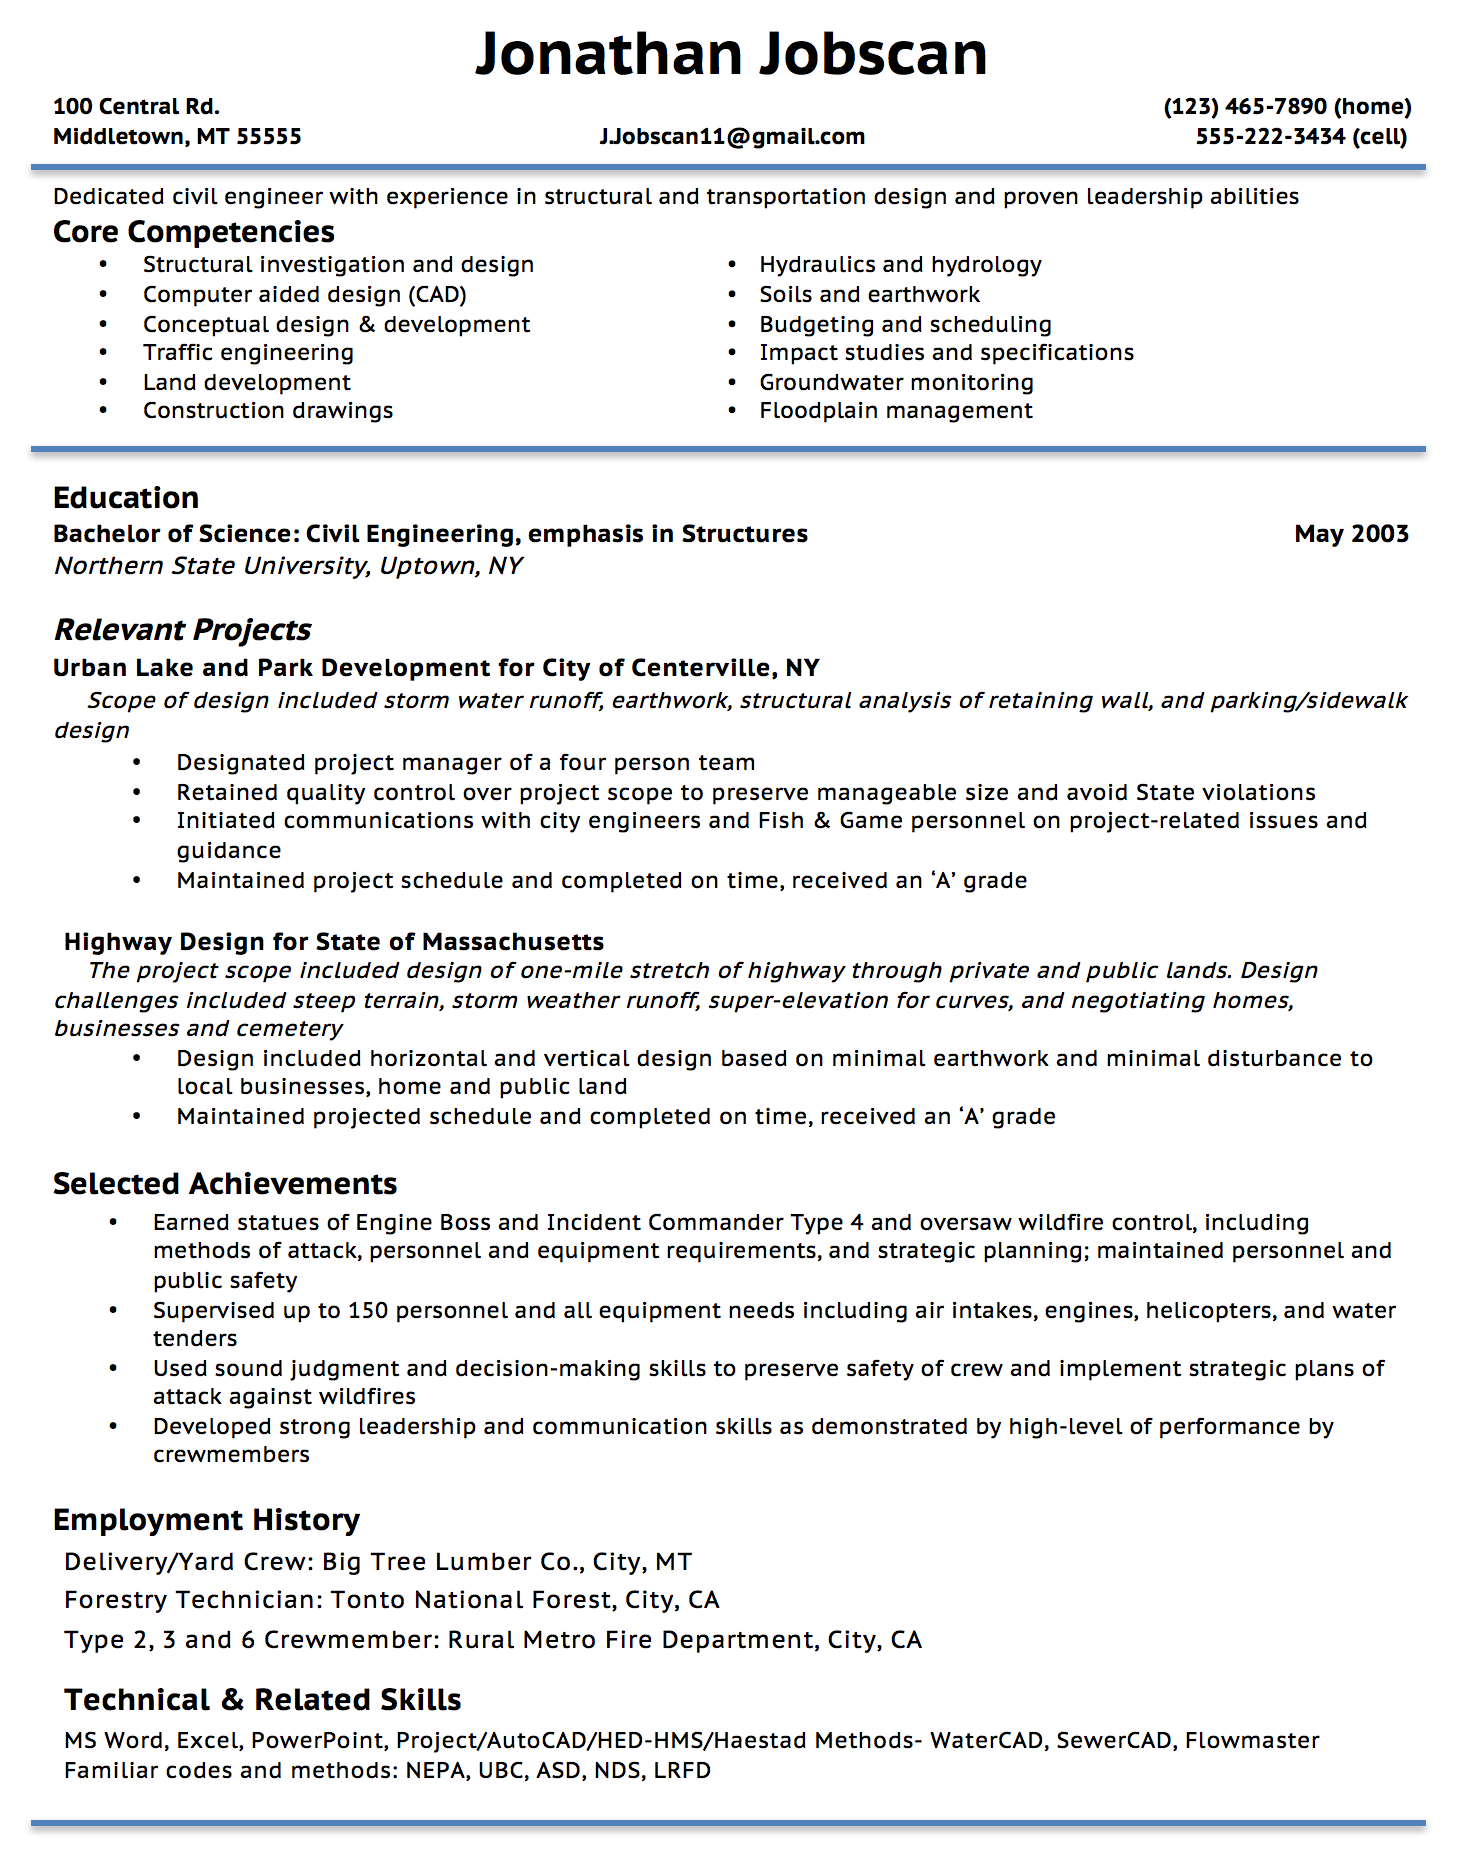 Opposenewapstandardsus  Fascinating Resume Writing Guide  Jobscan With Interesting Example Of A Functional Resume Format With Attractive Resume Paper Size Also Software Experience On Resume In Addition College Resume Template Word And Sample Resumes For Nurses As Well As Law Enforcement Resumes Additionally Advertising Account Executive Resume From Jobscanco With Opposenewapstandardsus  Interesting Resume Writing Guide  Jobscan With Attractive Example Of A Functional Resume Format And Fascinating Resume Paper Size Also Software Experience On Resume In Addition College Resume Template Word From Jobscanco